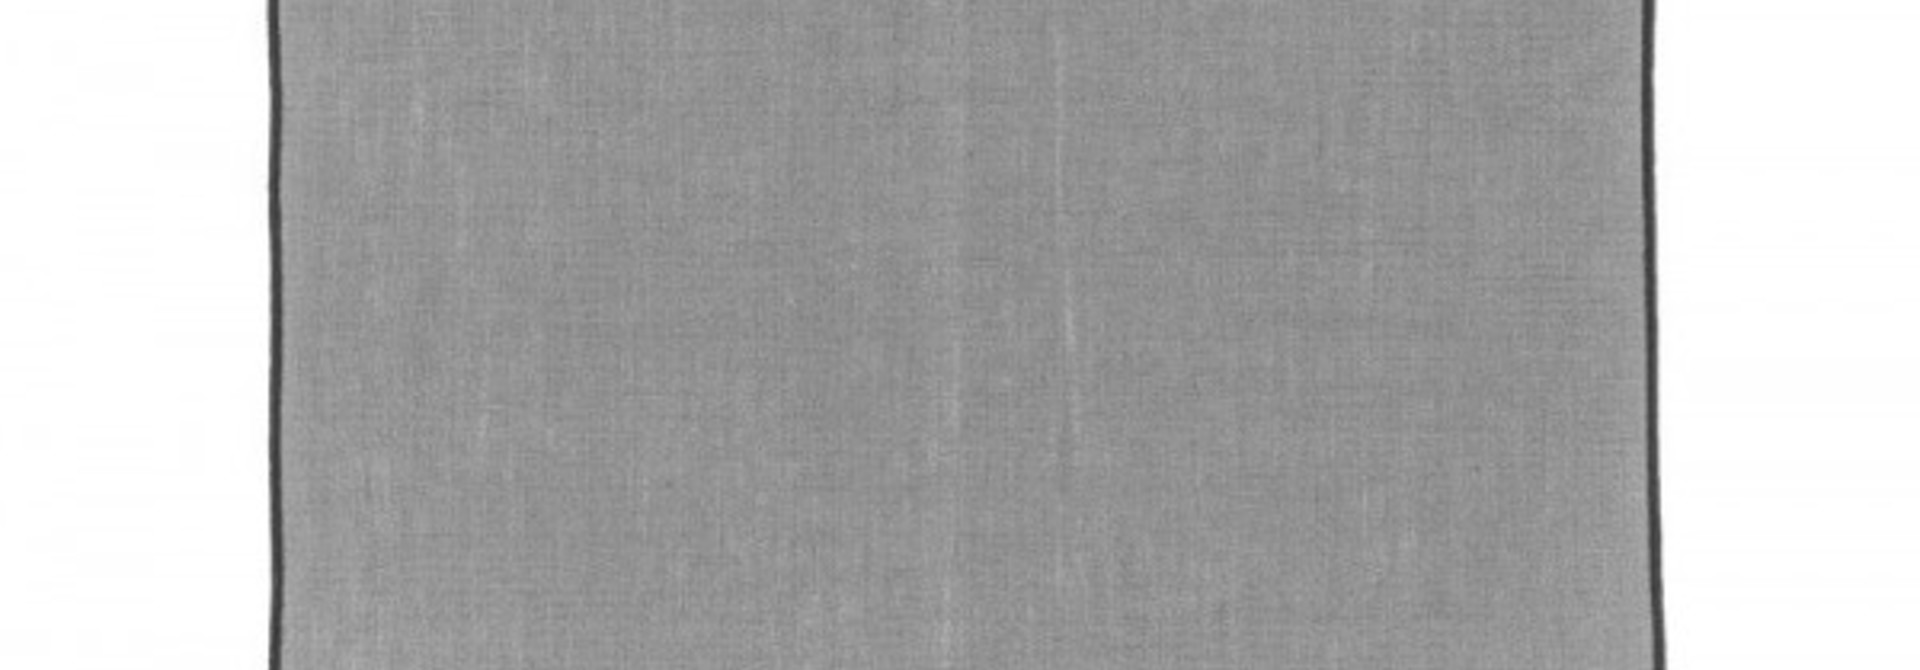 Placemat - Grey